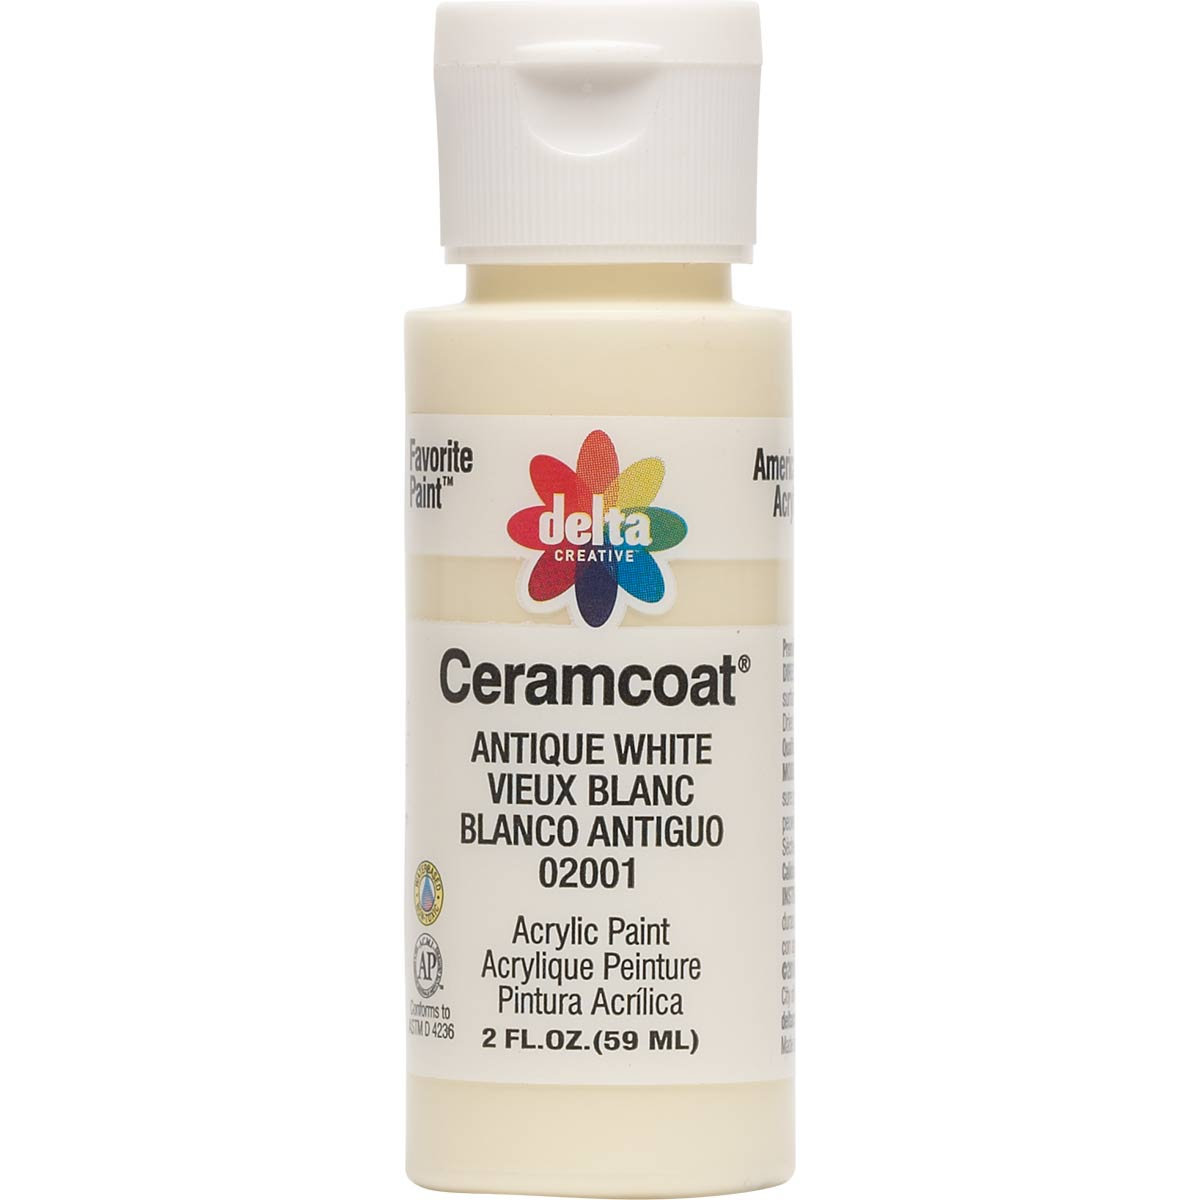 Delta Ceramcoat ® Acrylic Paint - Antique White, 2 oz. - 020010202W